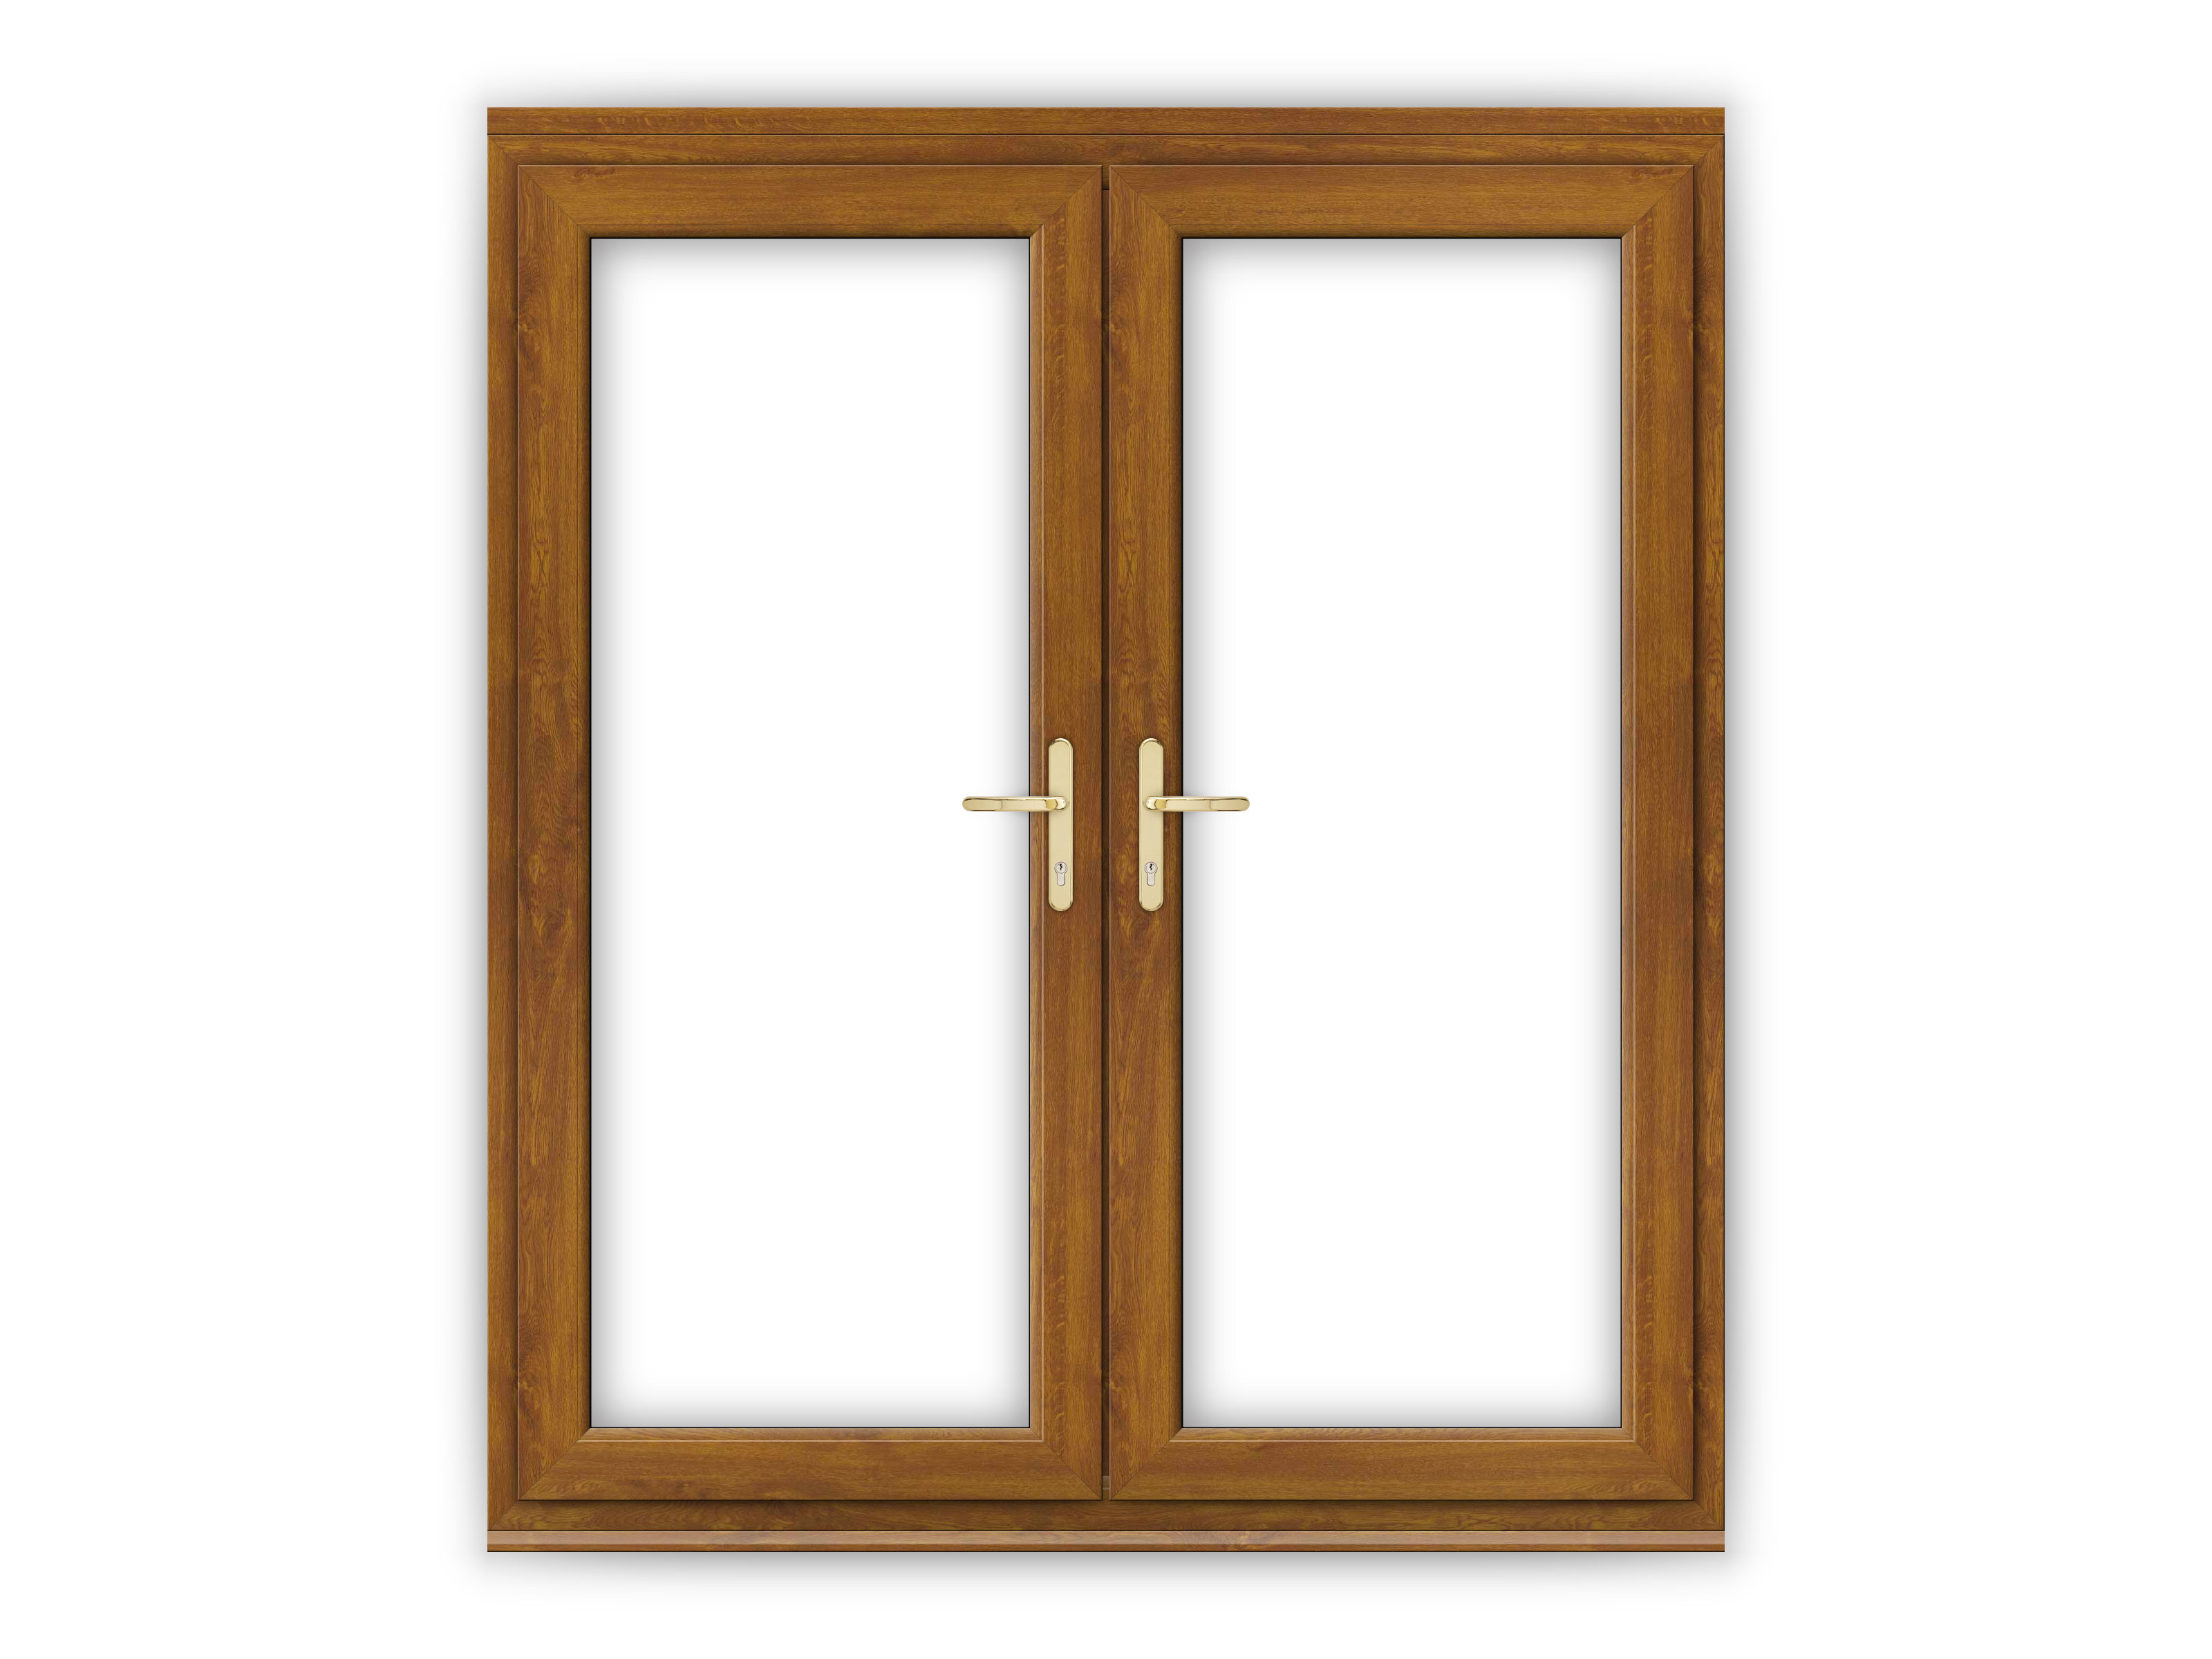 Six foot french doors 6 french doors examples ideas for 6 ft wide french doors